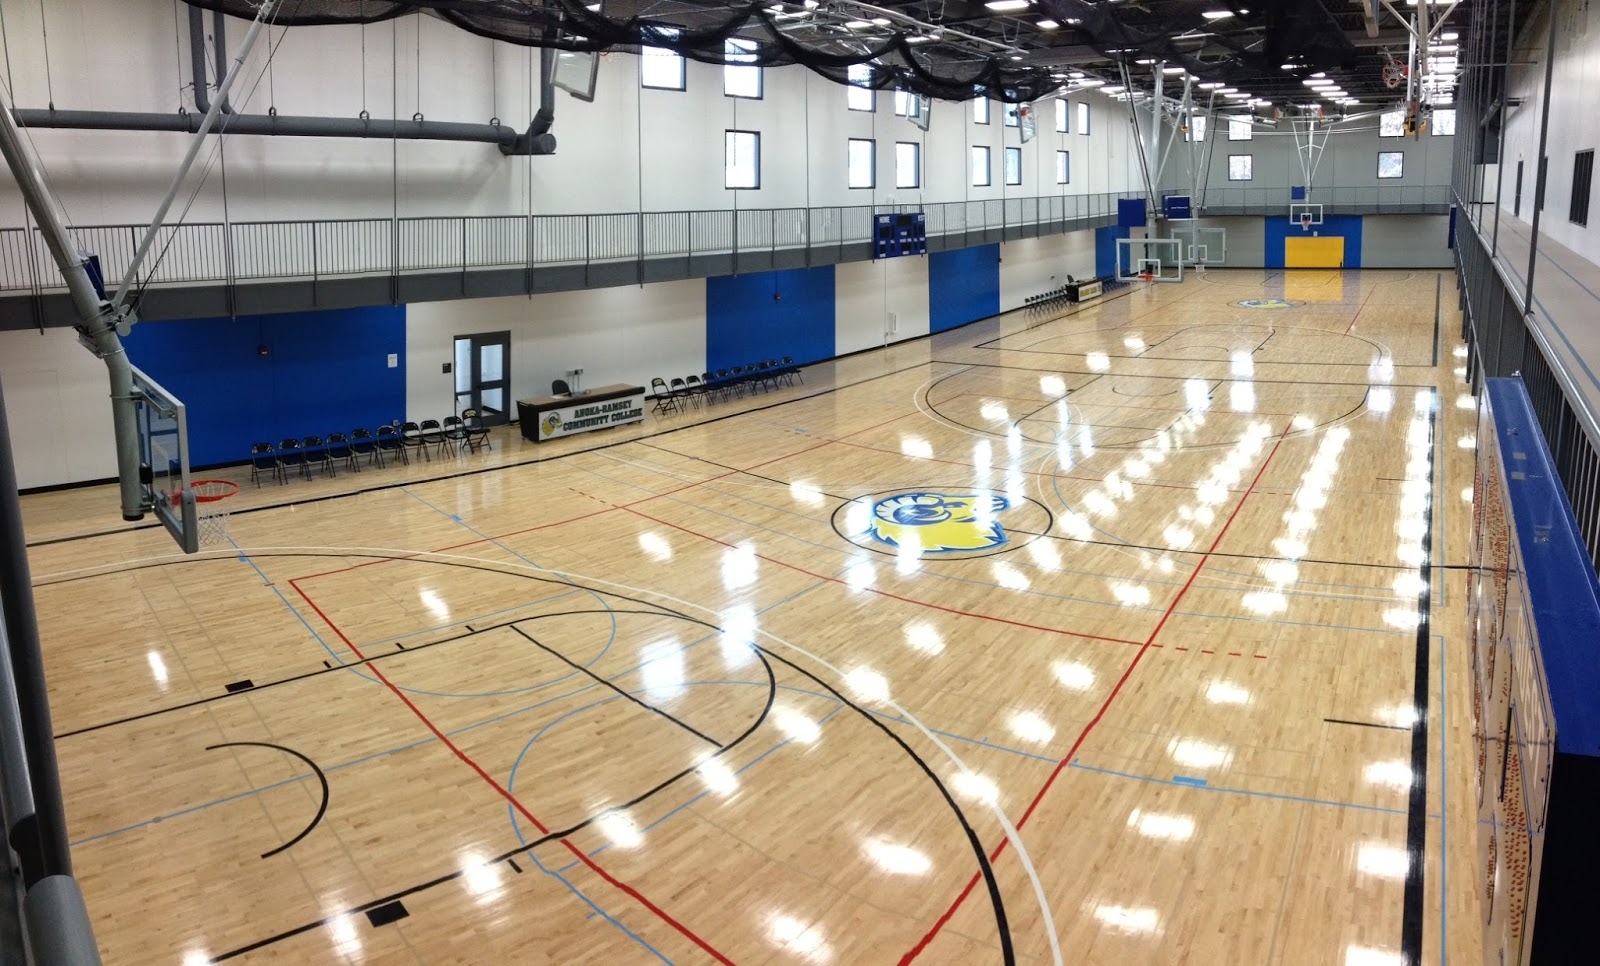 Anoka ramsey men 39 s basketball facilities for Basketball gym designs and layout